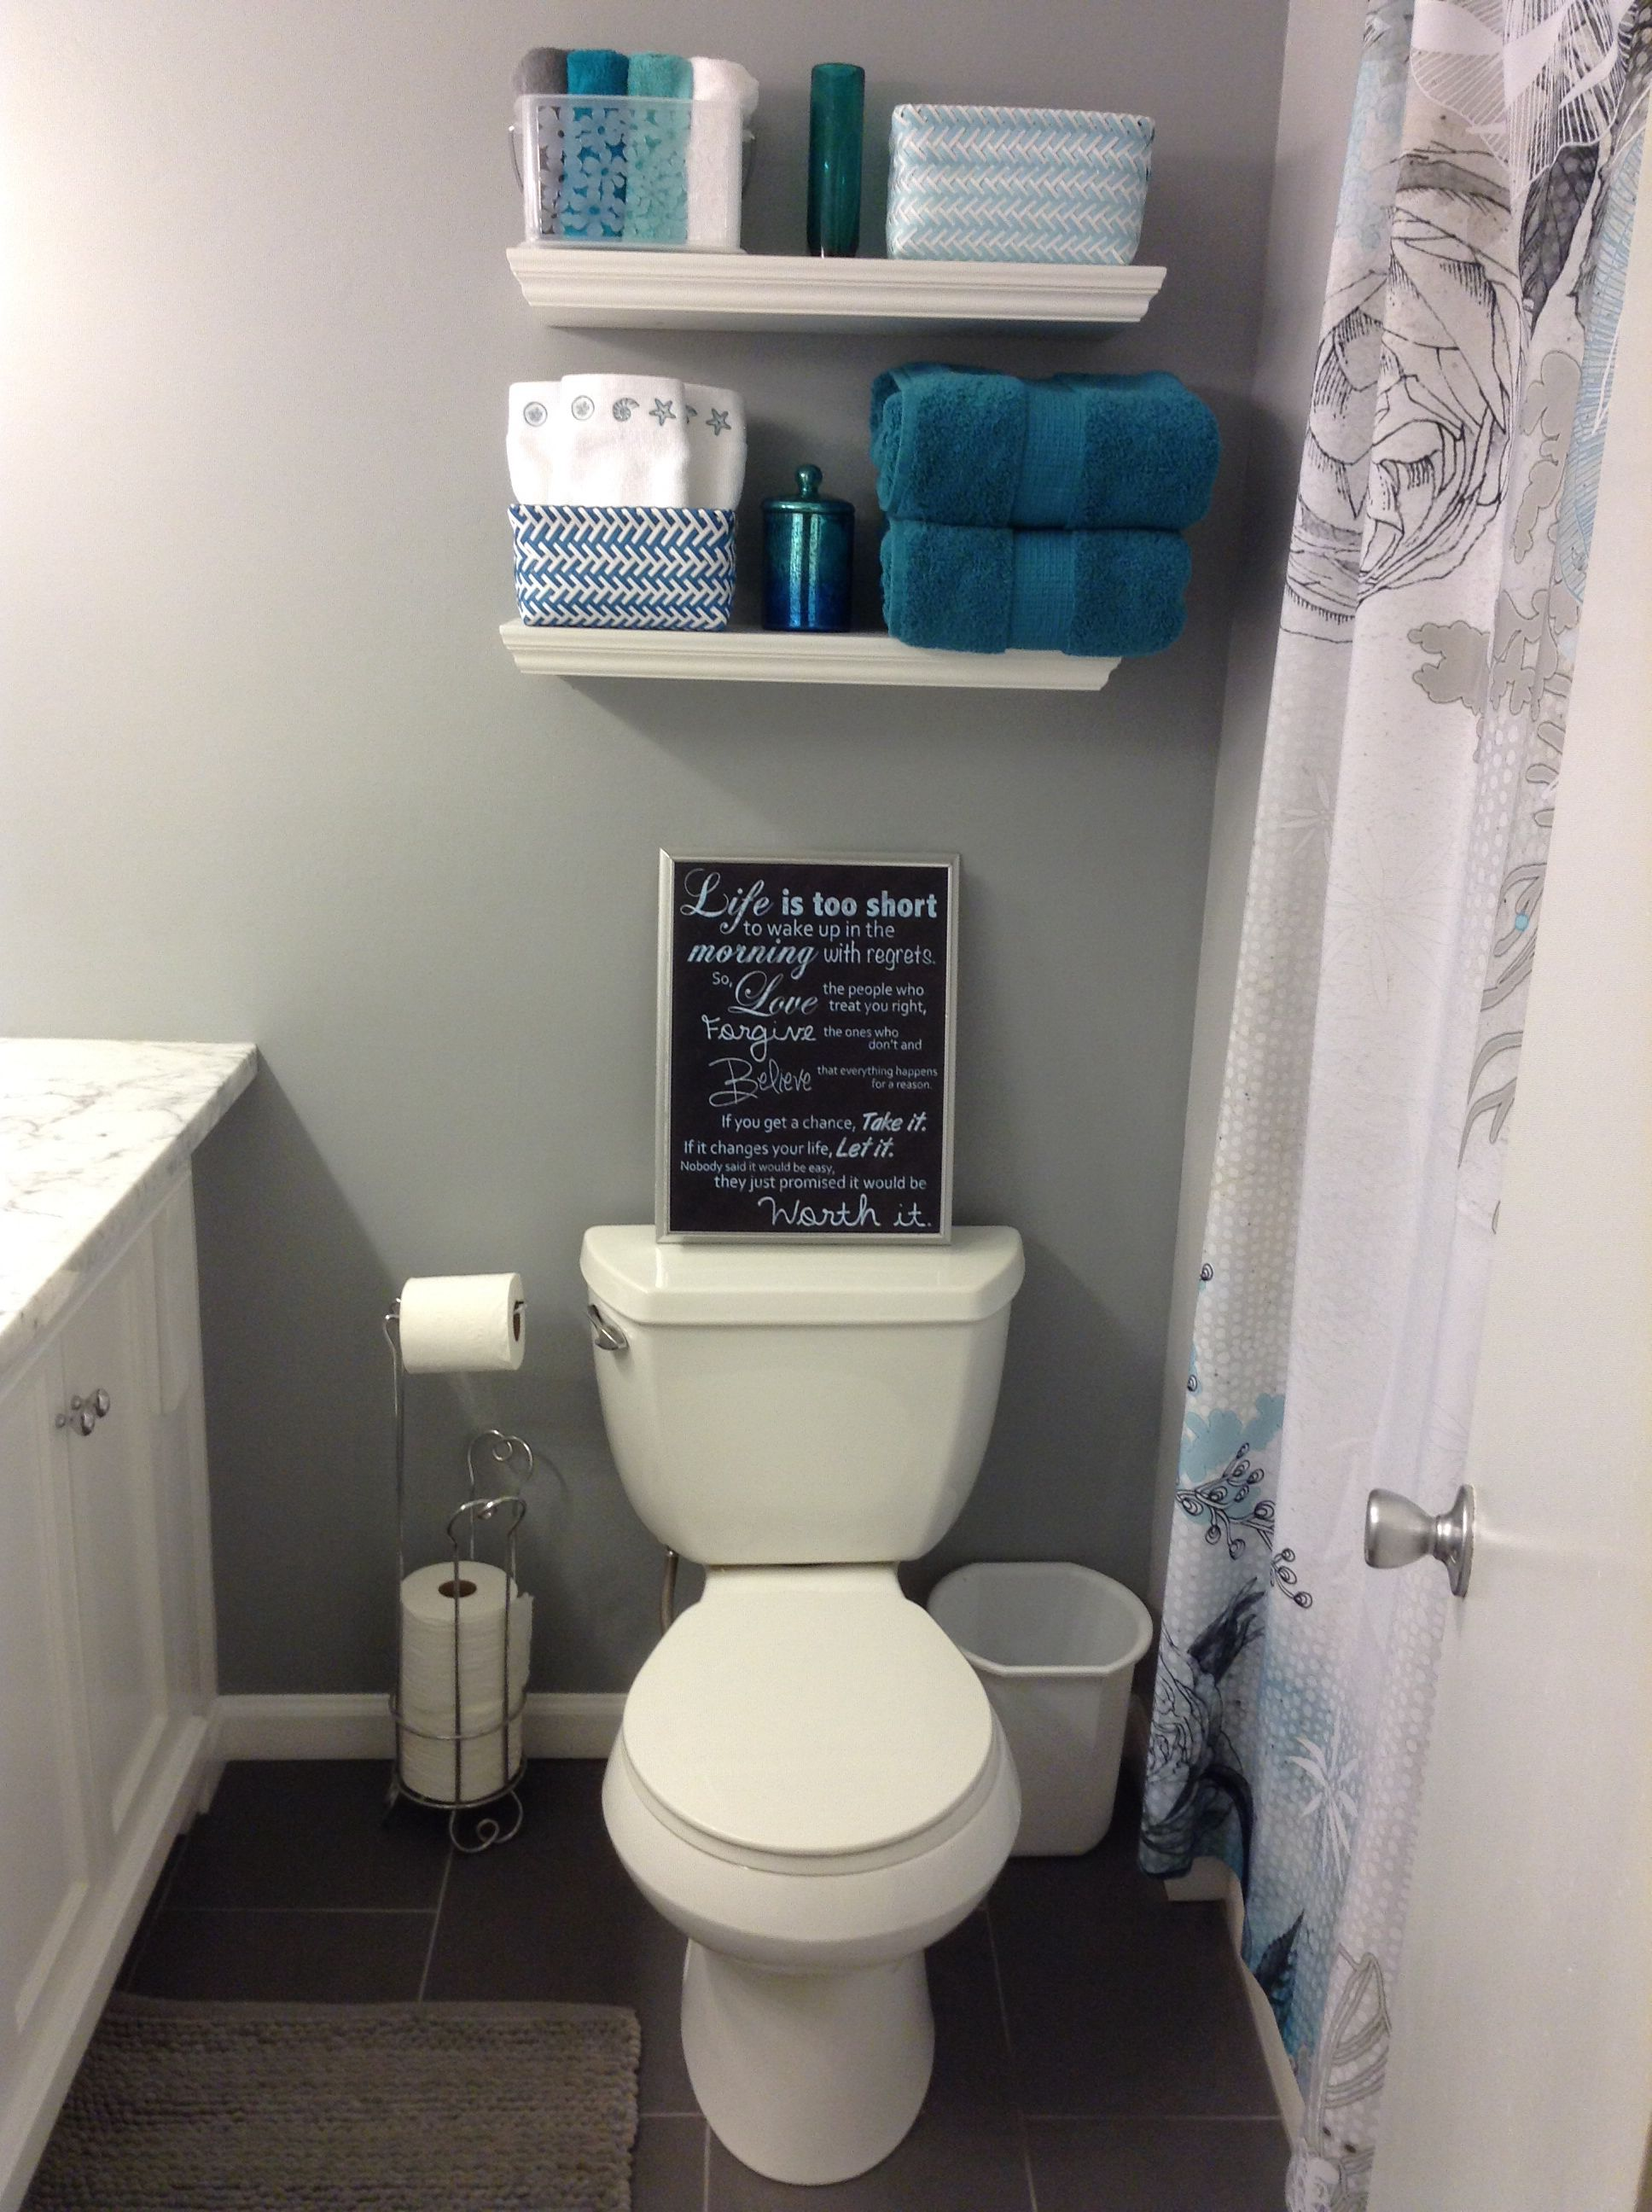 Bathroom Remodel Teal And Grey With Images Teal Bathroom Decor Bathrooms Remodel Grey Bathrooms